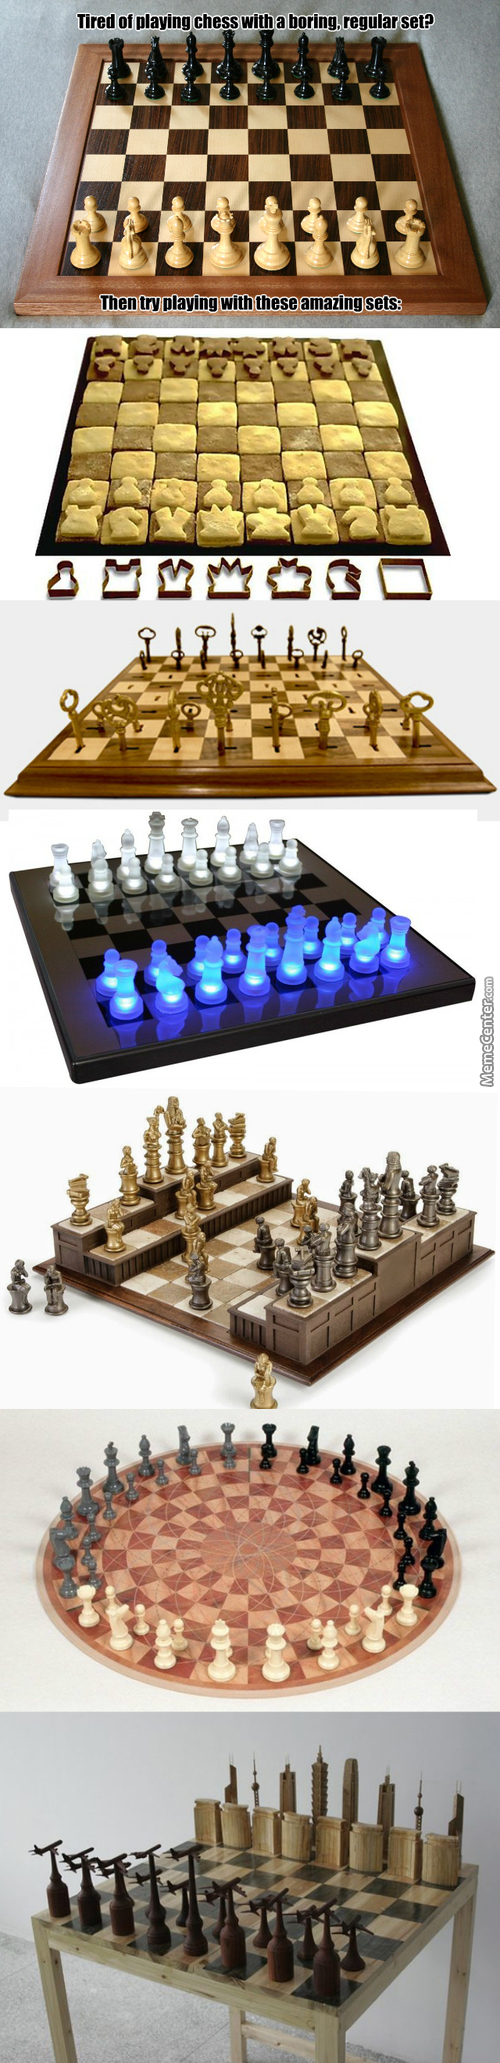 It's Still Chess, But It's Fun Paying With Cool Sets